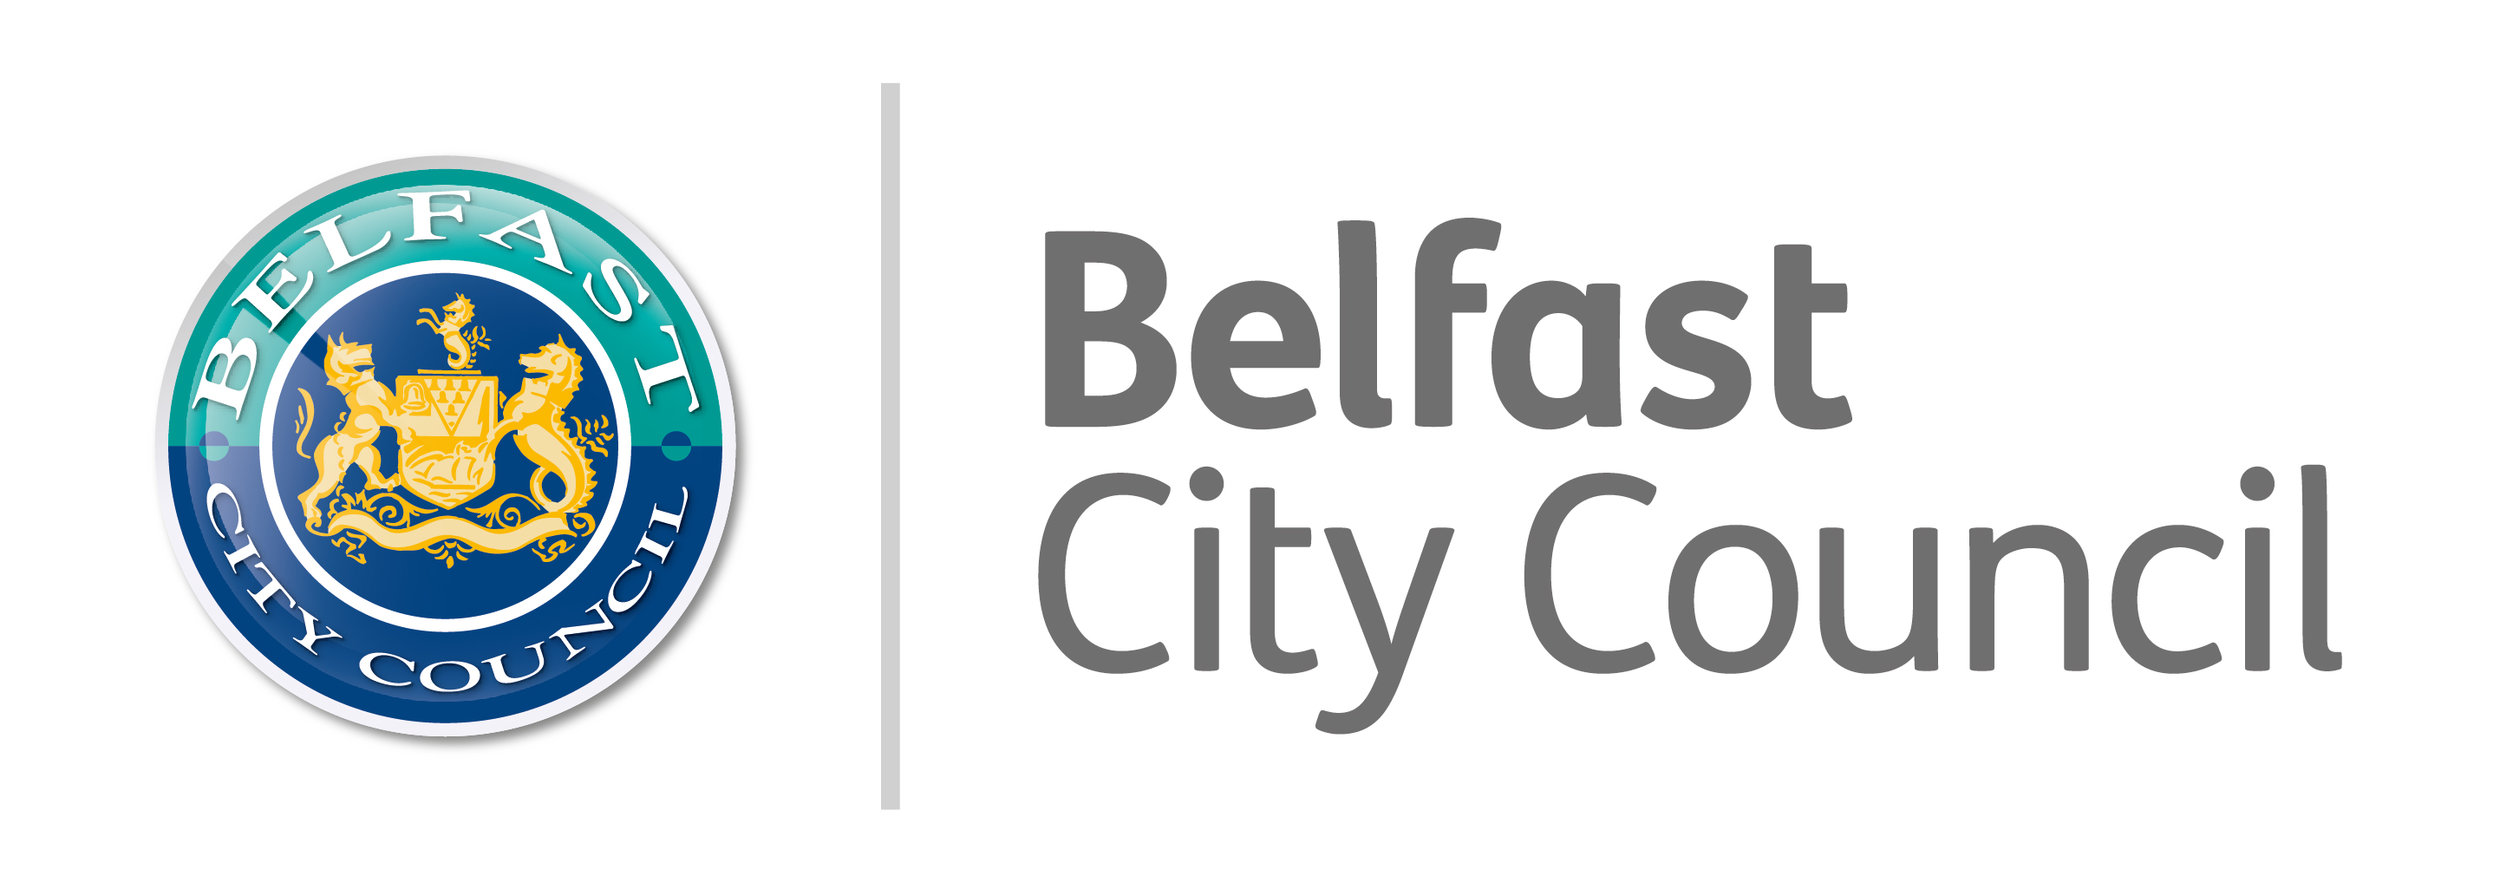 Belfast City Council 2015 (Master).jpg